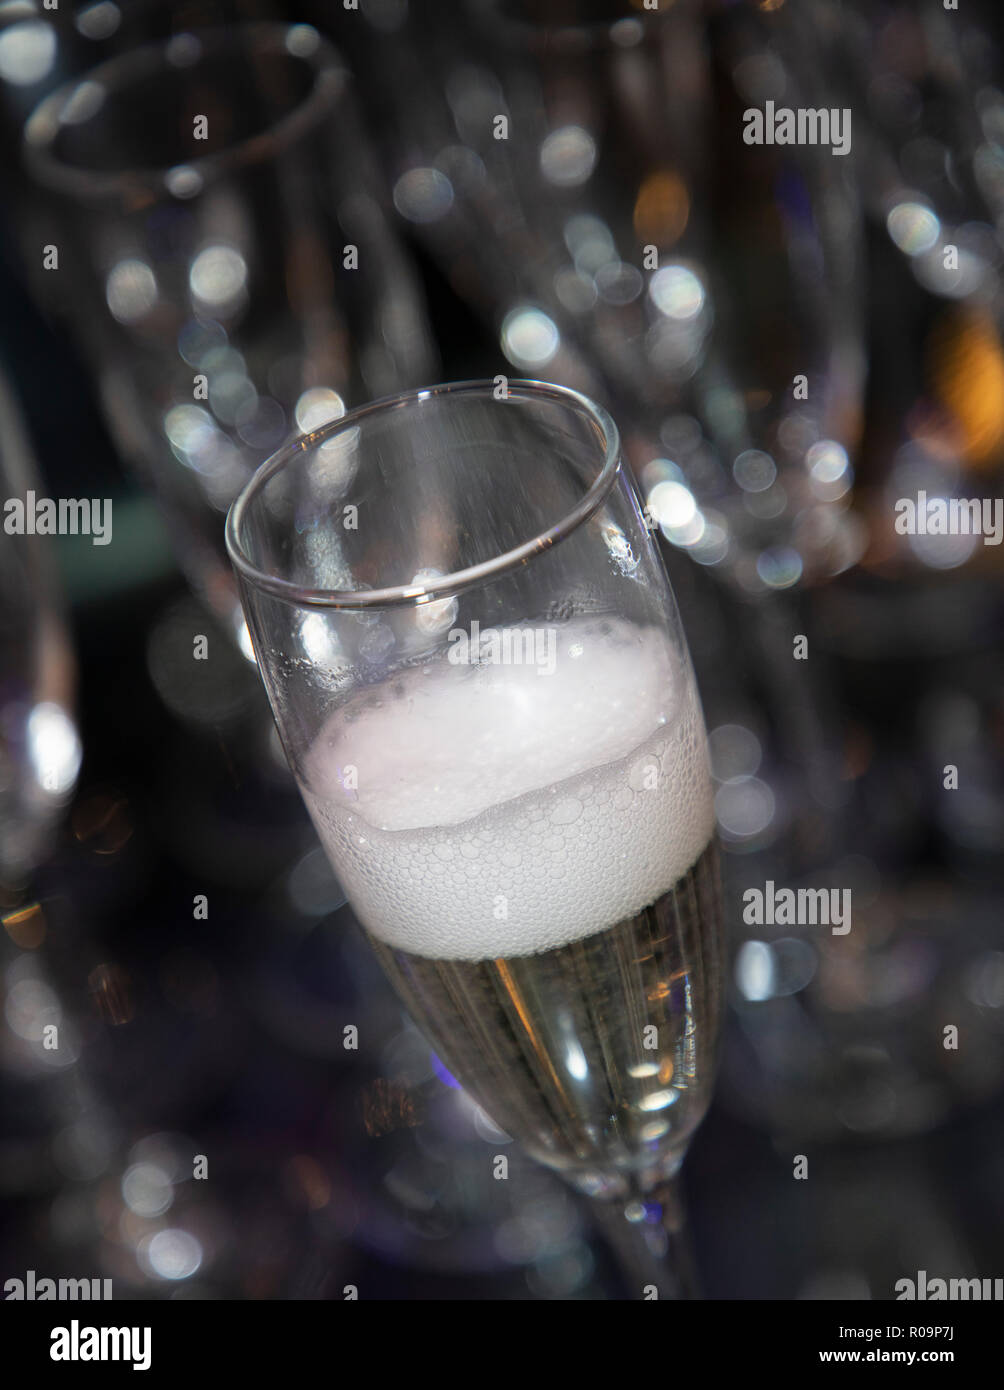 Glass of sparkling wine just poured with a bubbly head. Blurred, bokeh background - Stock Image